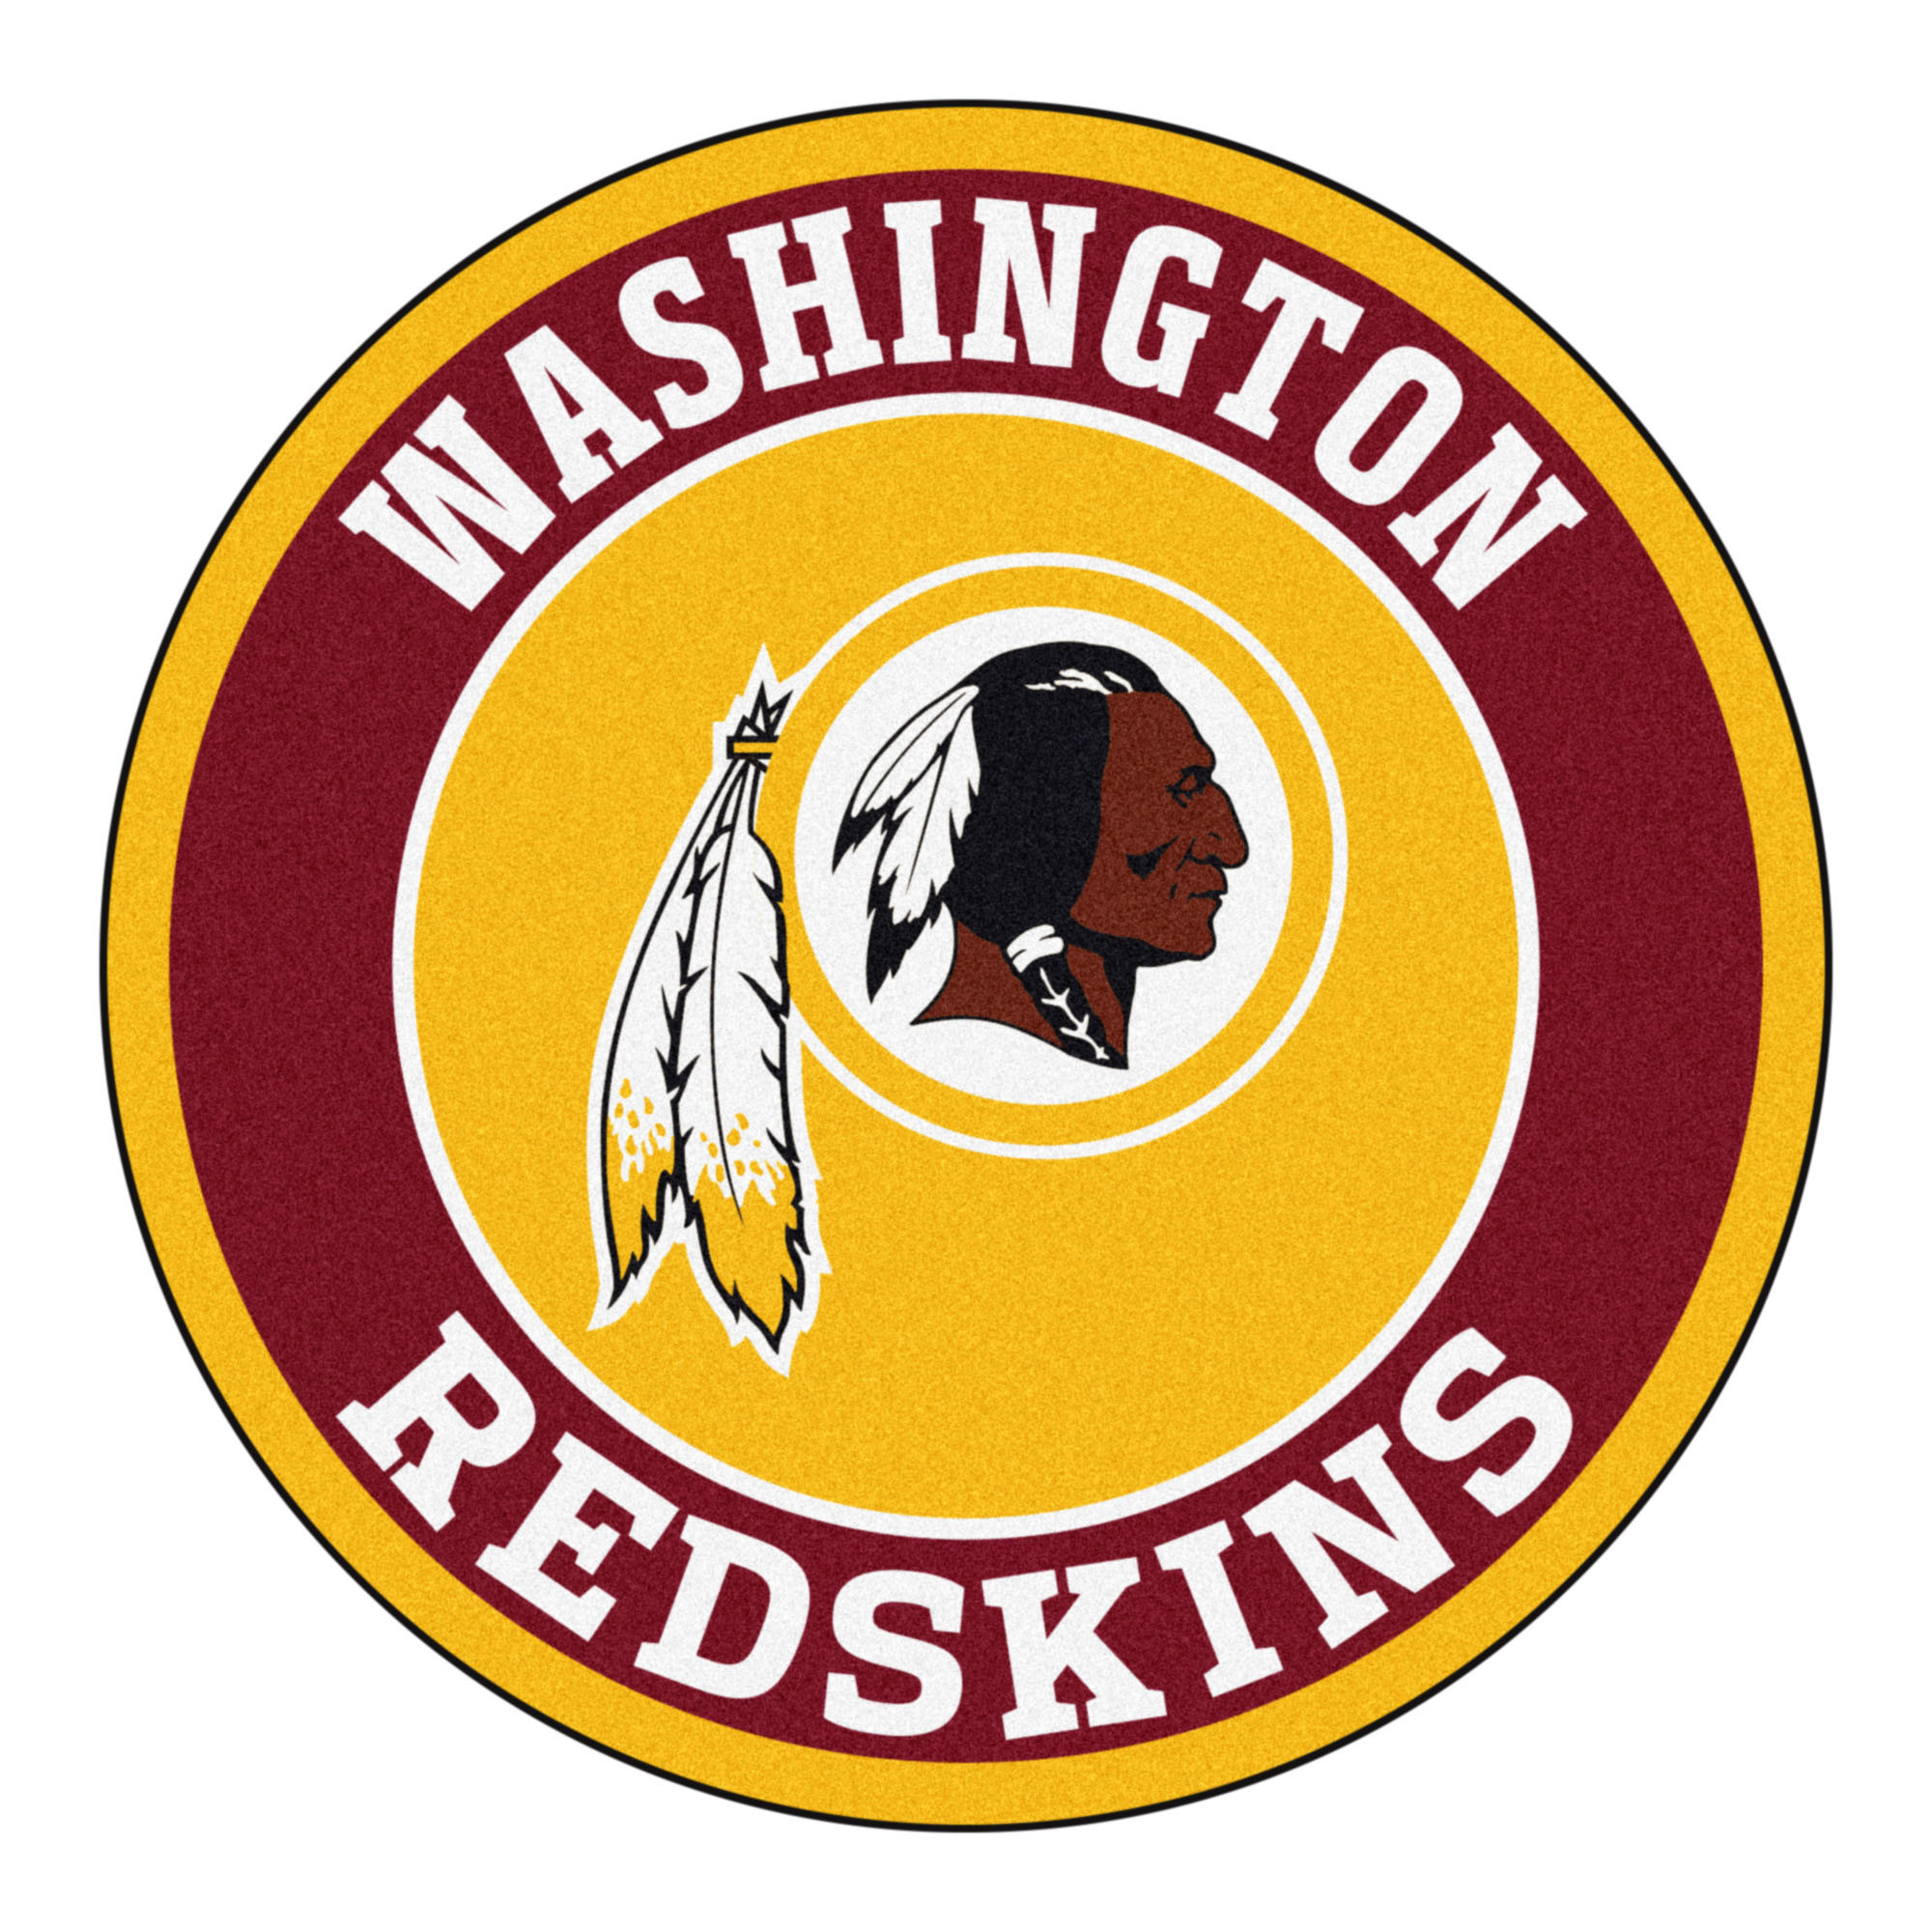 2000x2000 Nice Images Collection: Washington Redskins Desktop Wallpapers